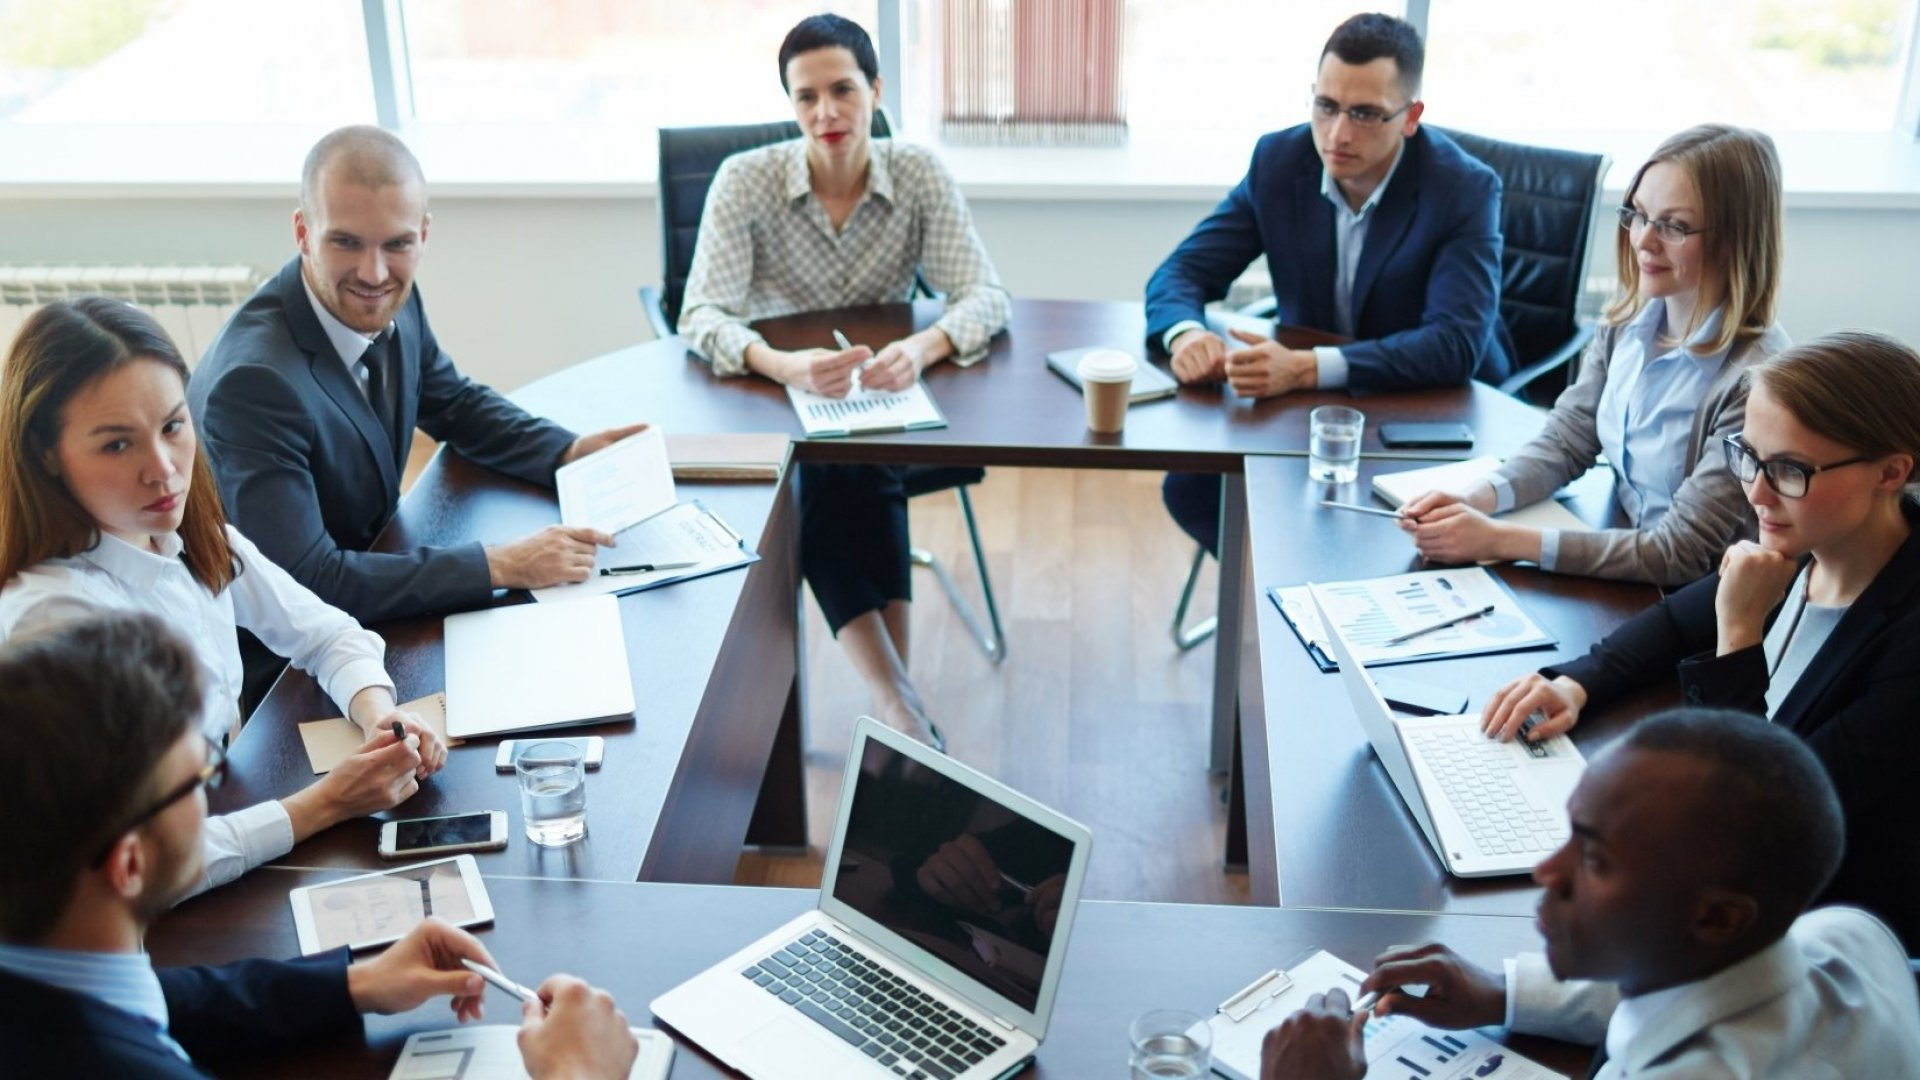 Building an Advisory Board? Remember These 5 Strategies to Land The Right Advisors